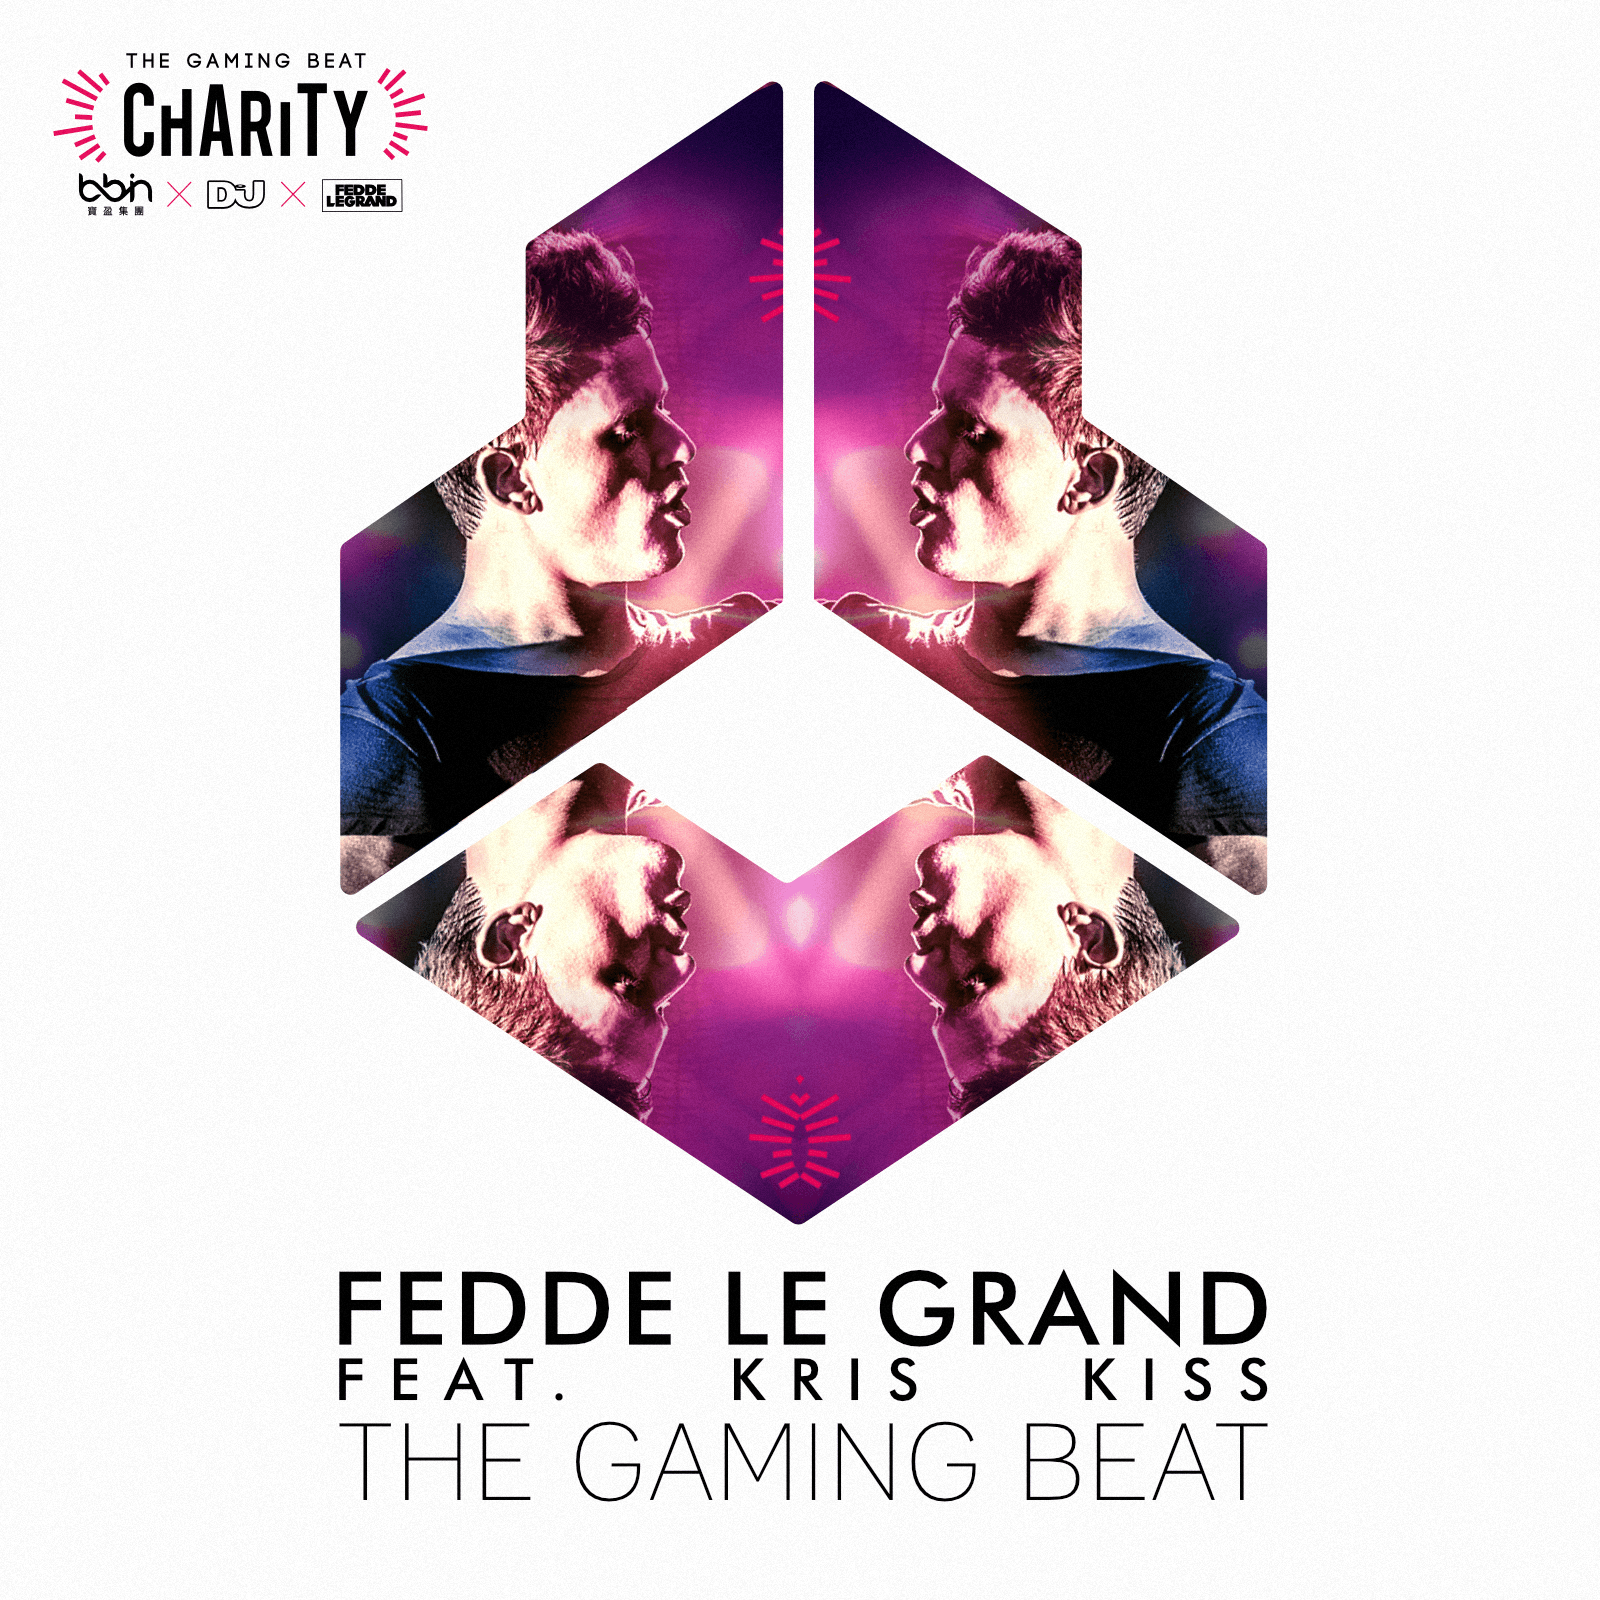 Fedde Le Grand feat. Kris Kiss - The Gaming Beat